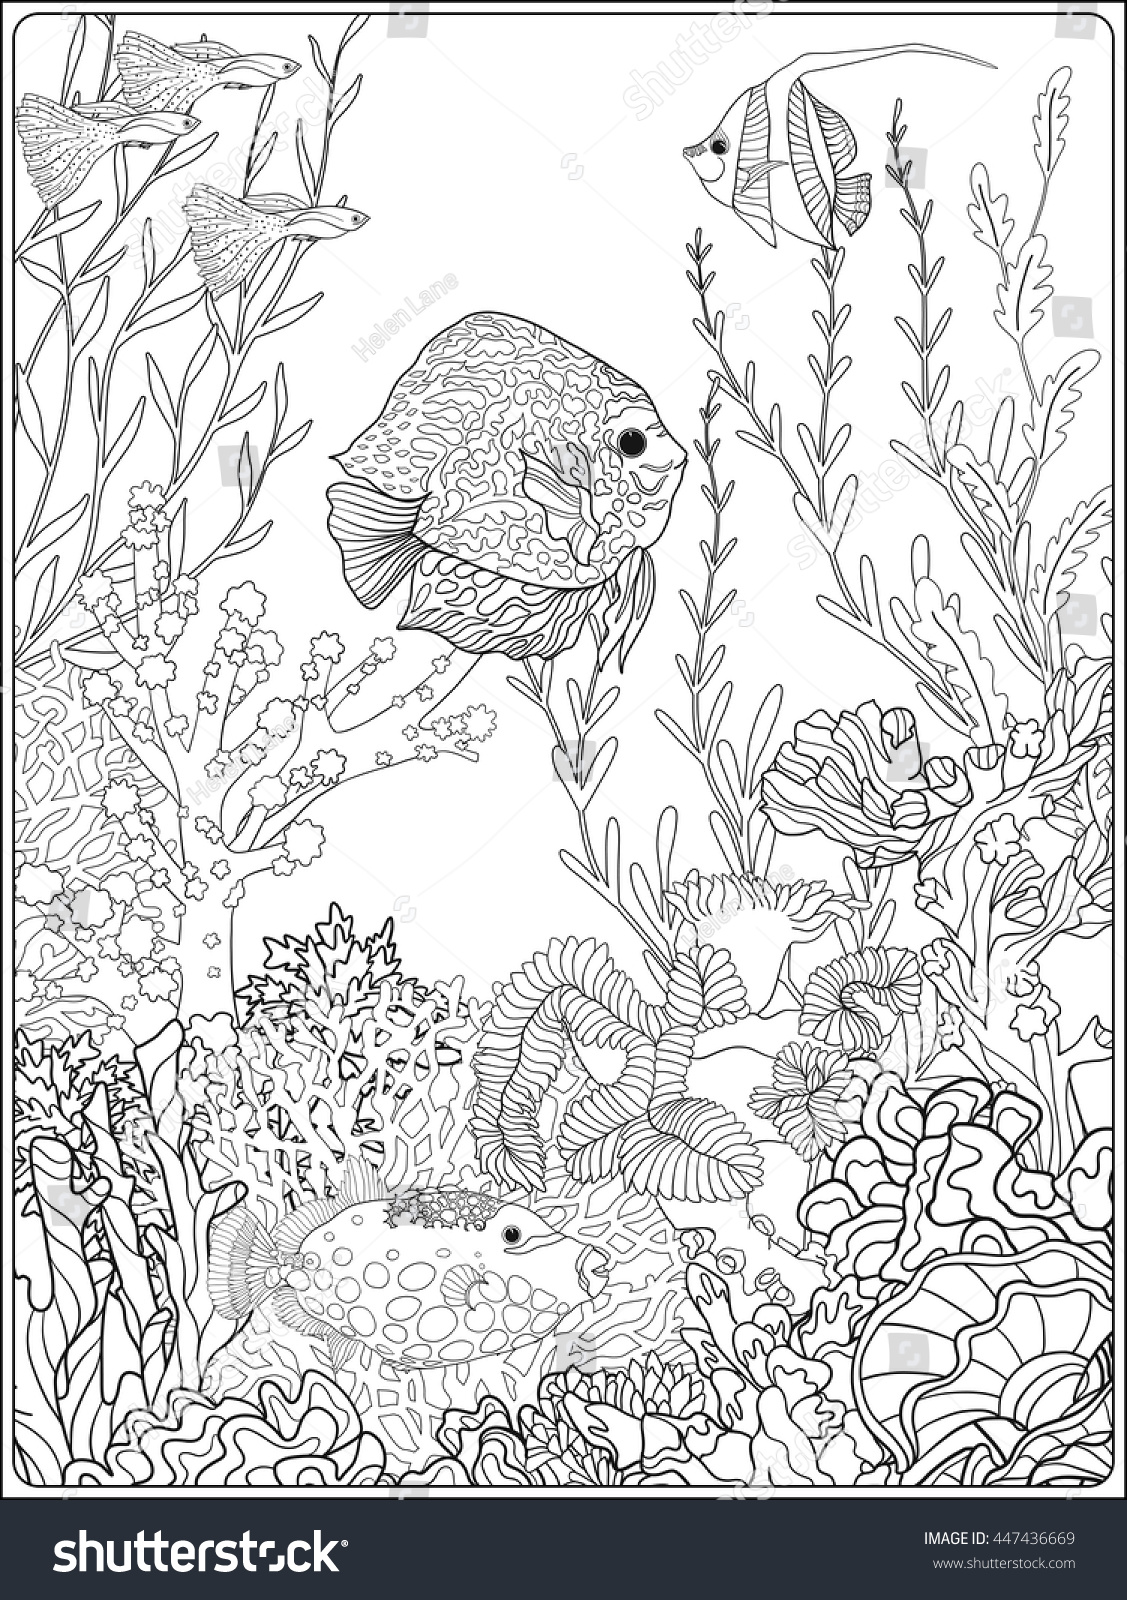 Adult Coloring Book Coloring Page Underwater Stock Vector 447436669